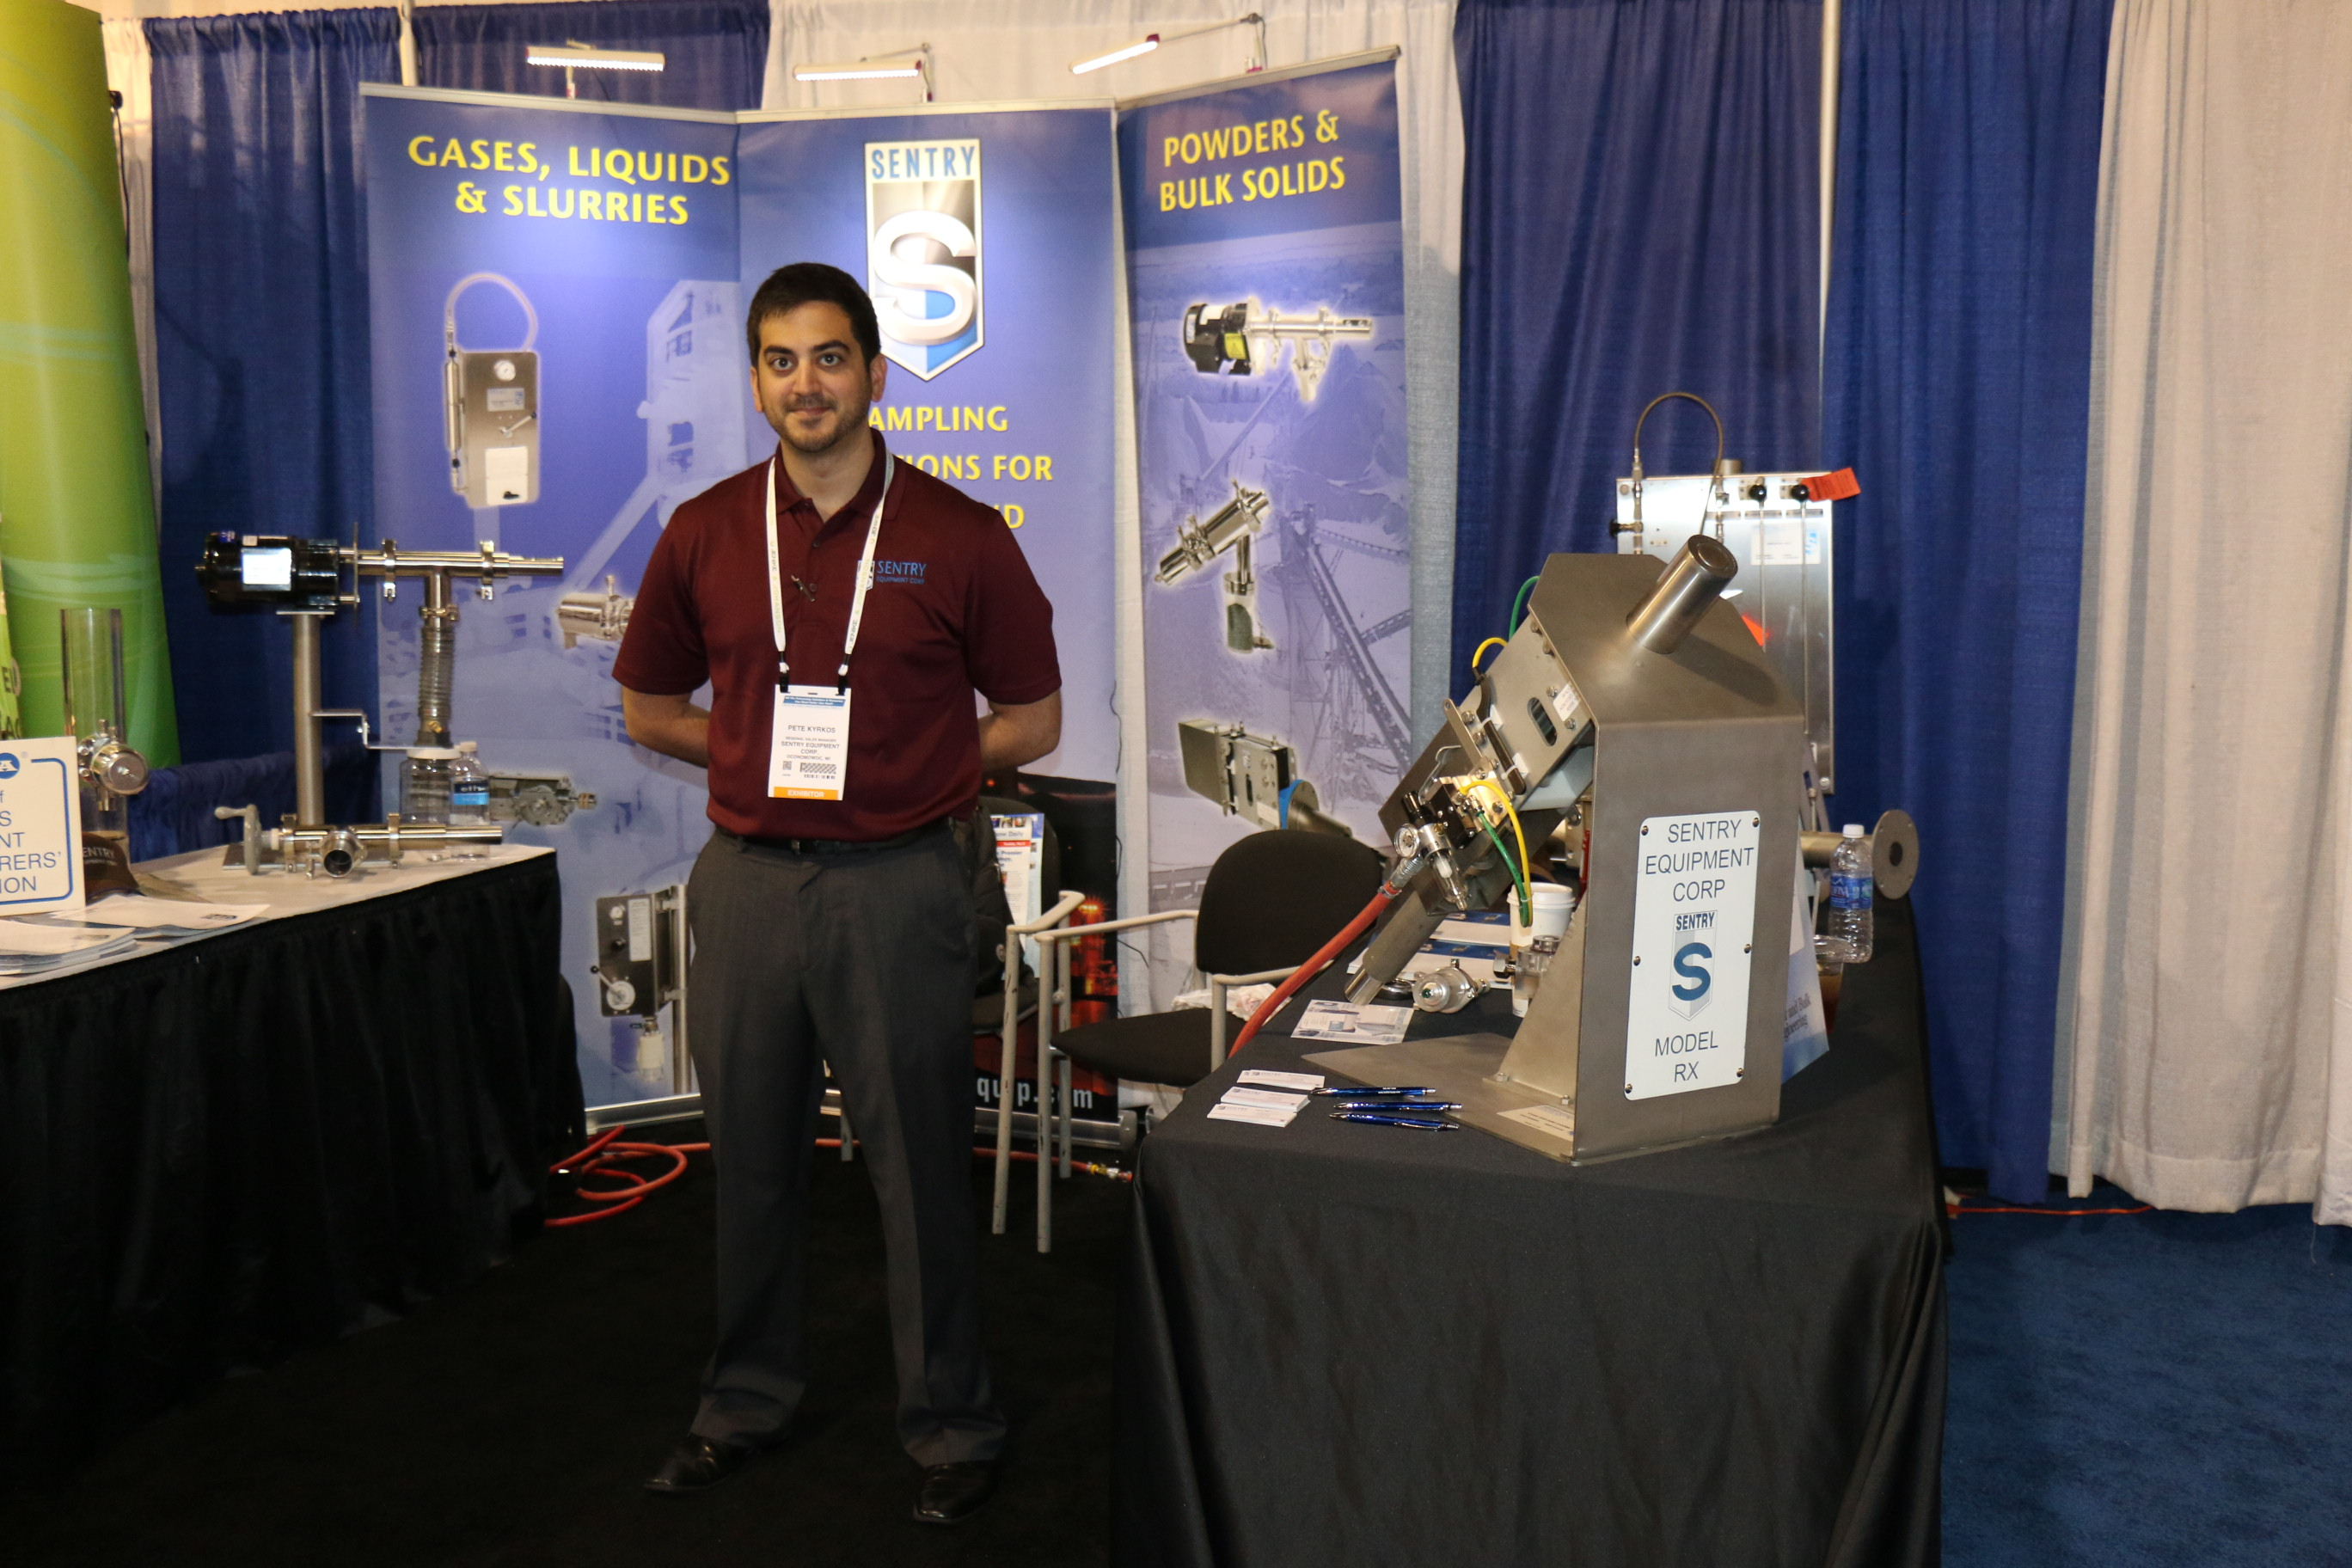 SENTRY Equipment Corp. at the Powder & Bulk Solids Show in Chicago